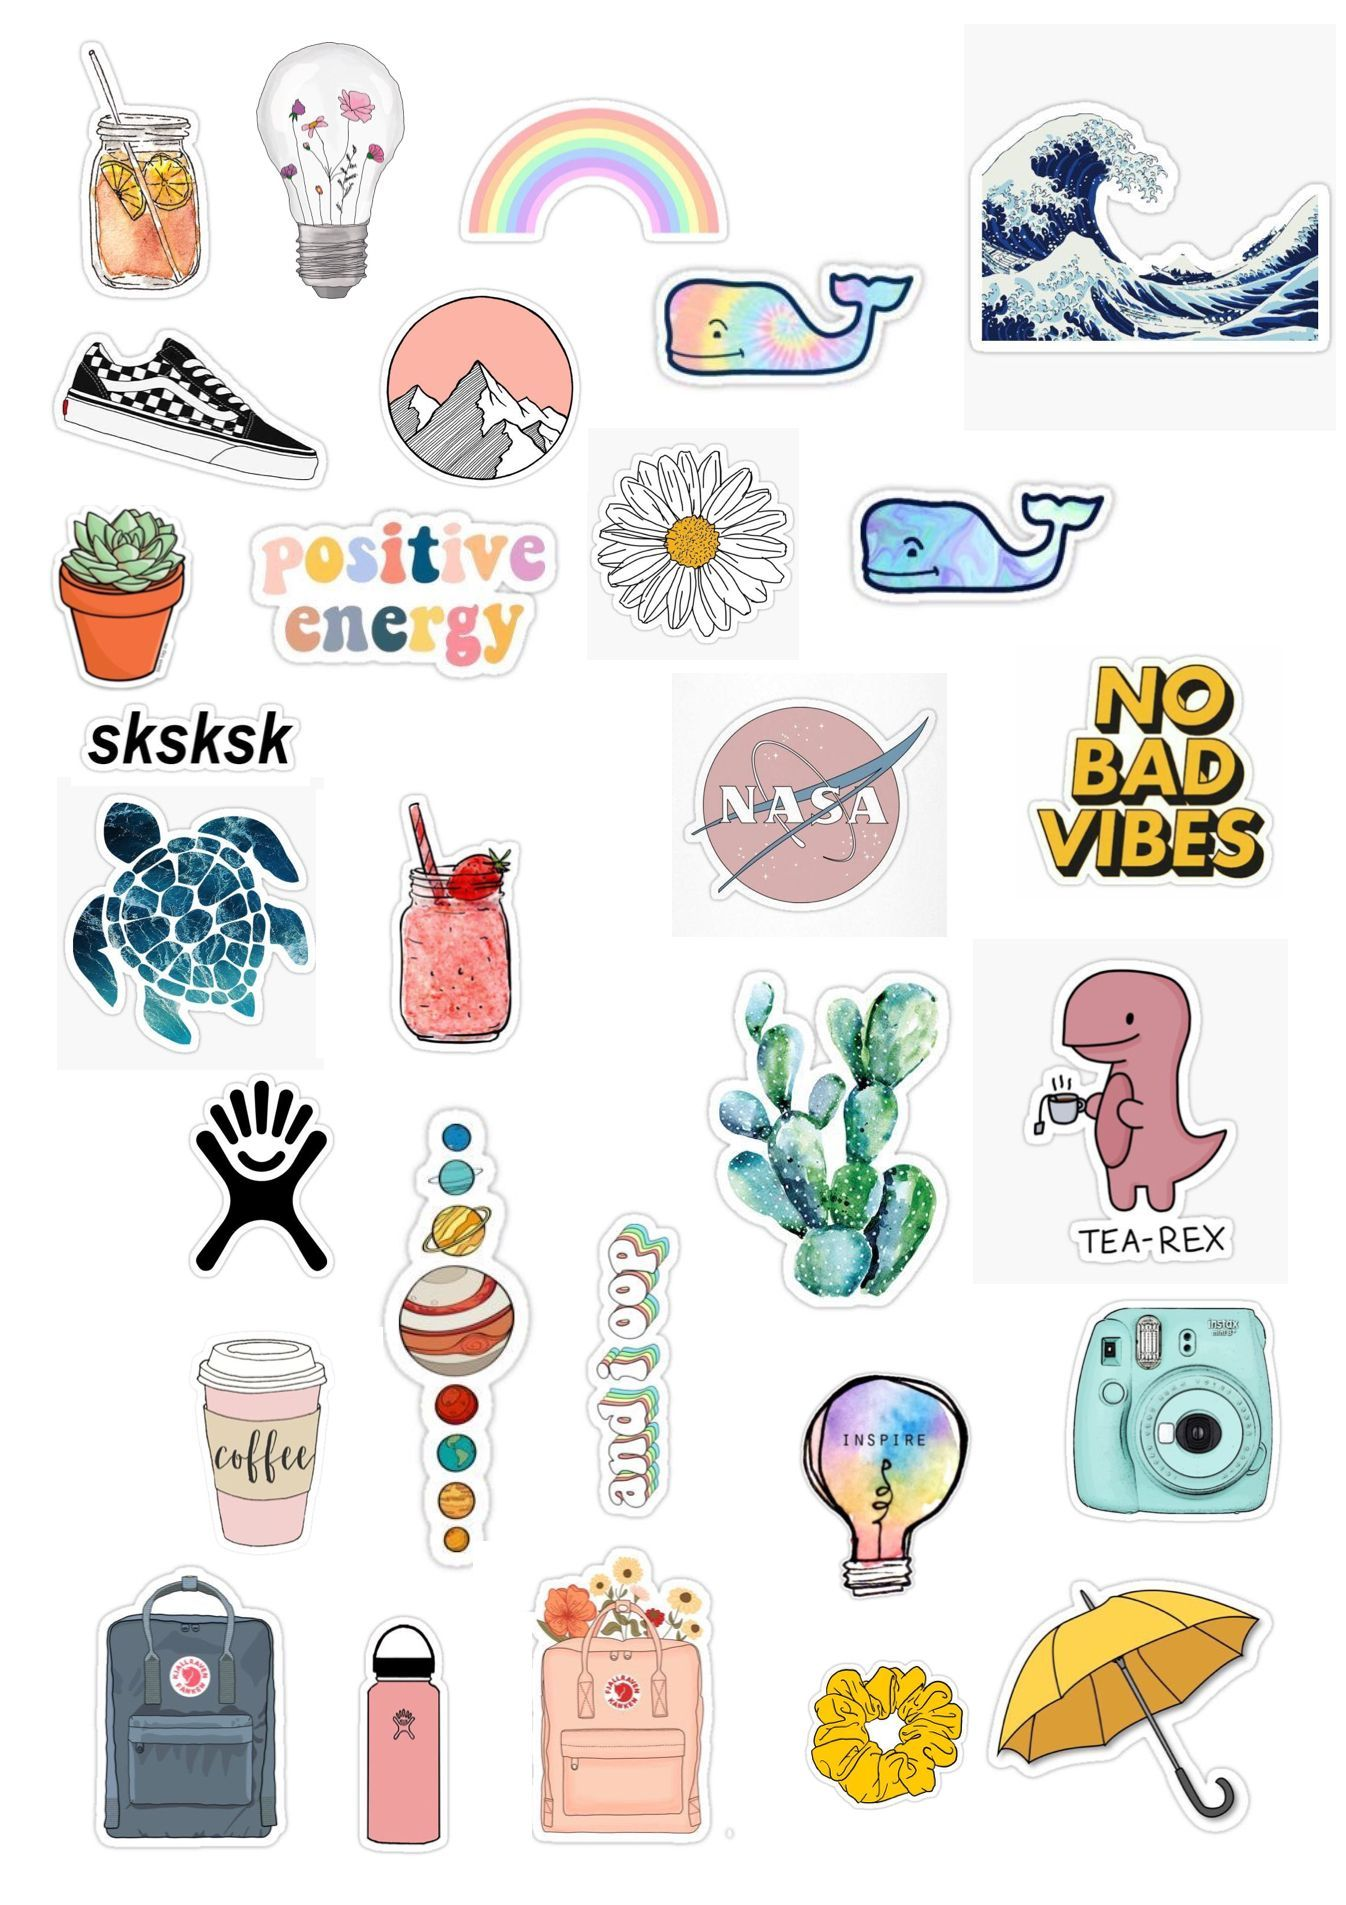 Best Snap Shots Printable Stickers Bts Popular On The List Of Many Delights In The Online Can Be Printables I M Ge In 2021 Cool Stickers Girl Stickers Cute Stickers